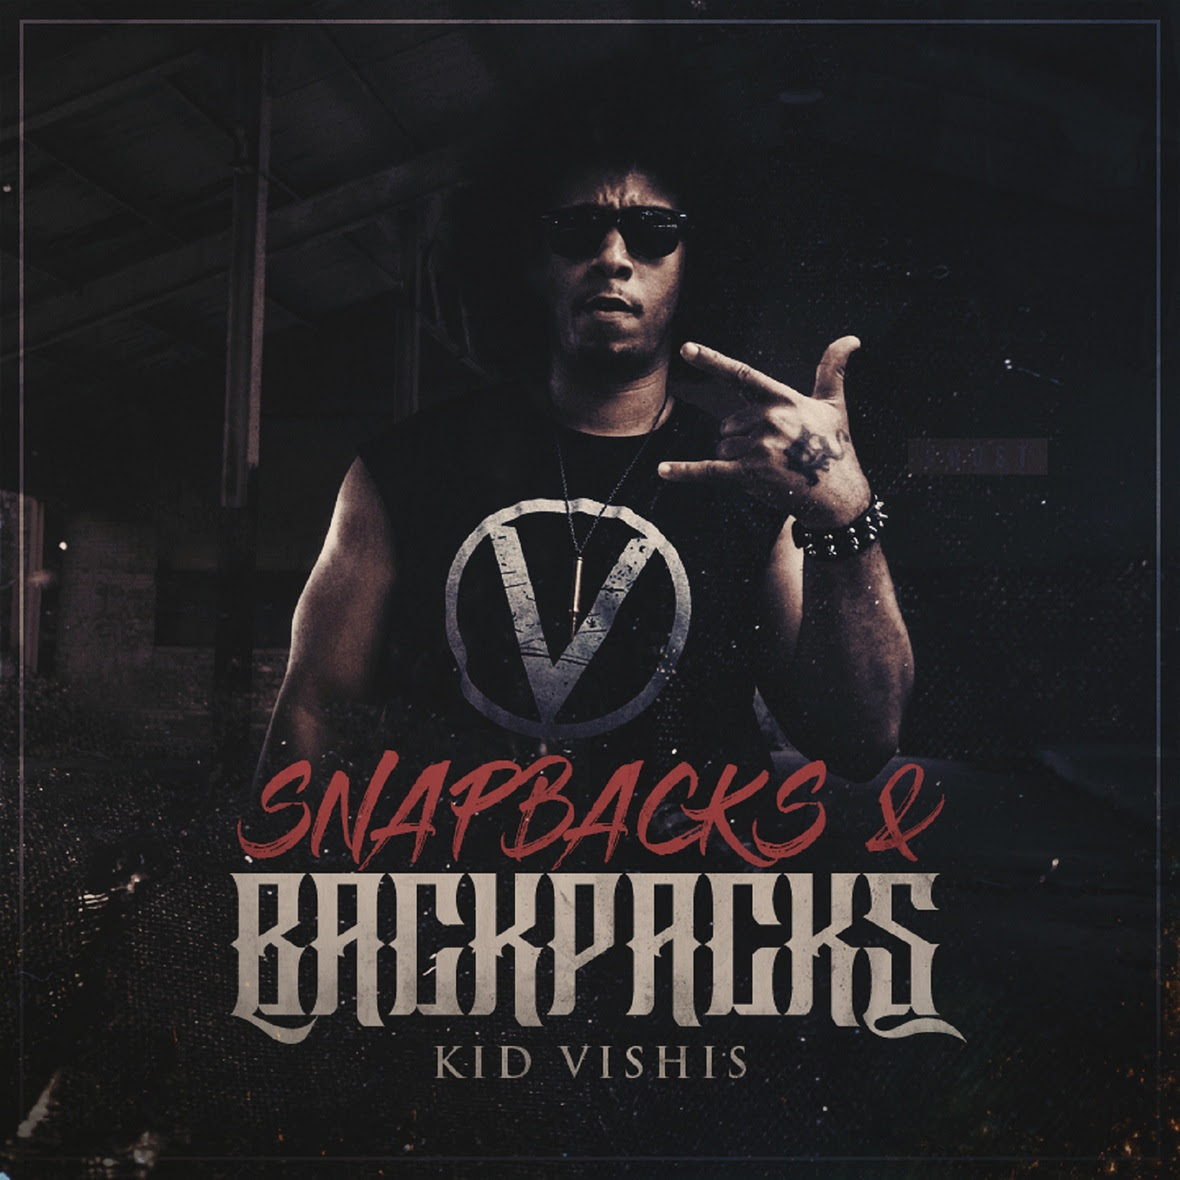 Kid Vishis - Snapbacks & Backpacks